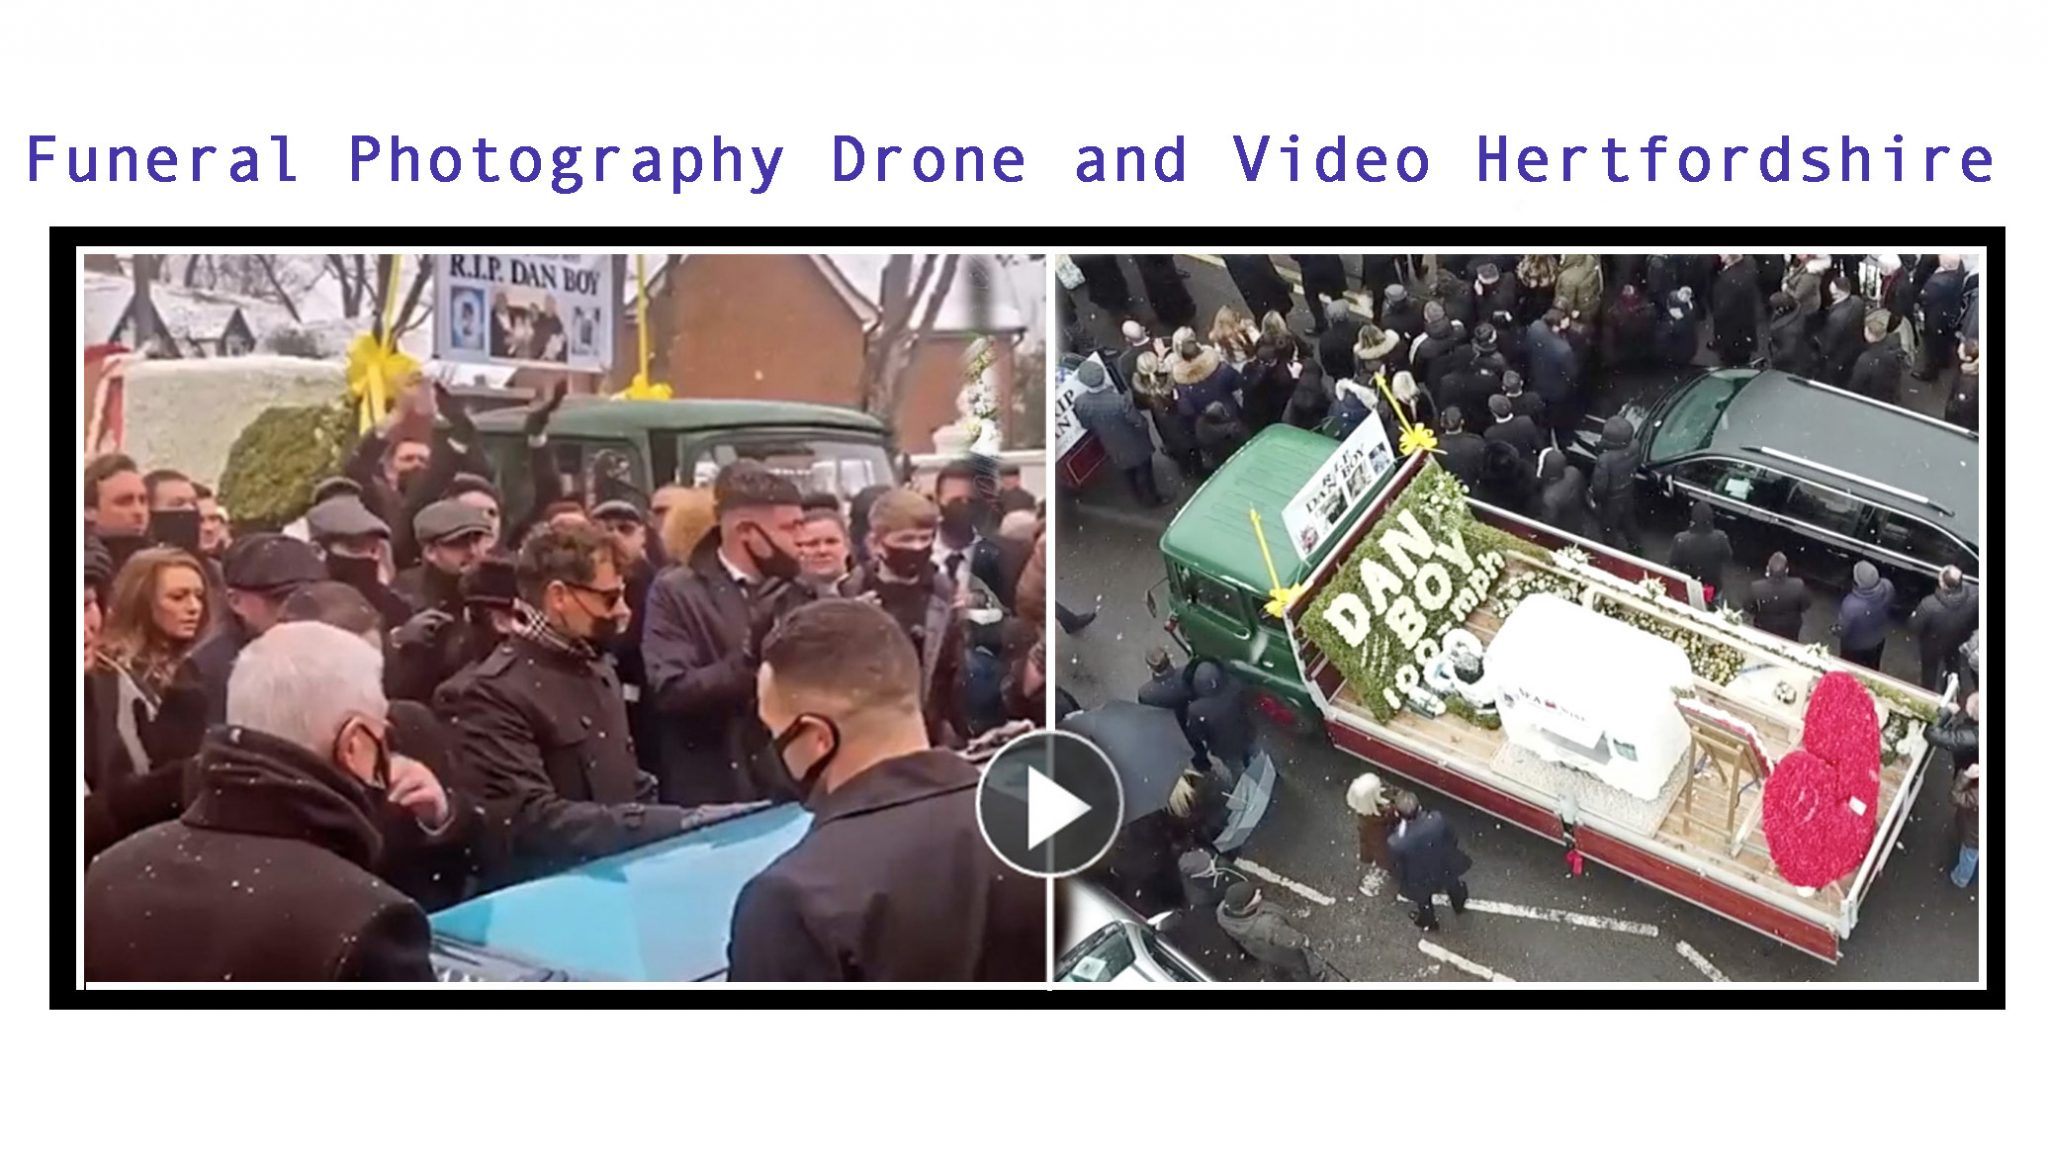 Funeral Photography Drone and Video Hertfordshire